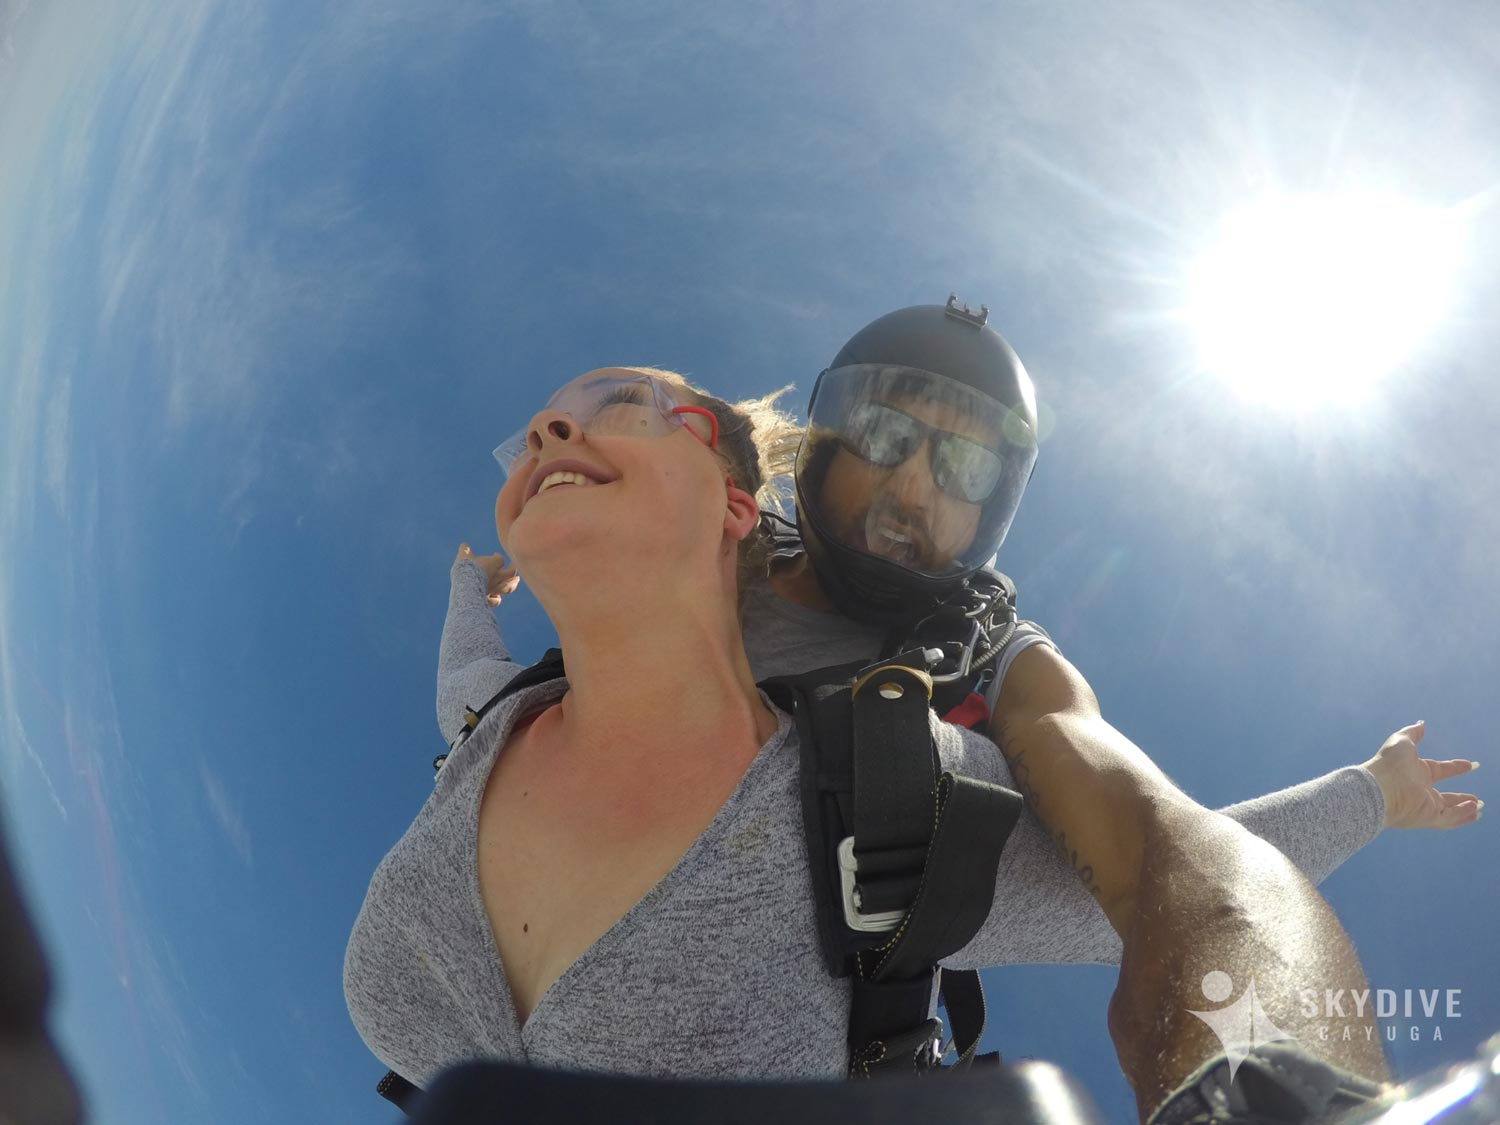 Skydive Ontario Prices